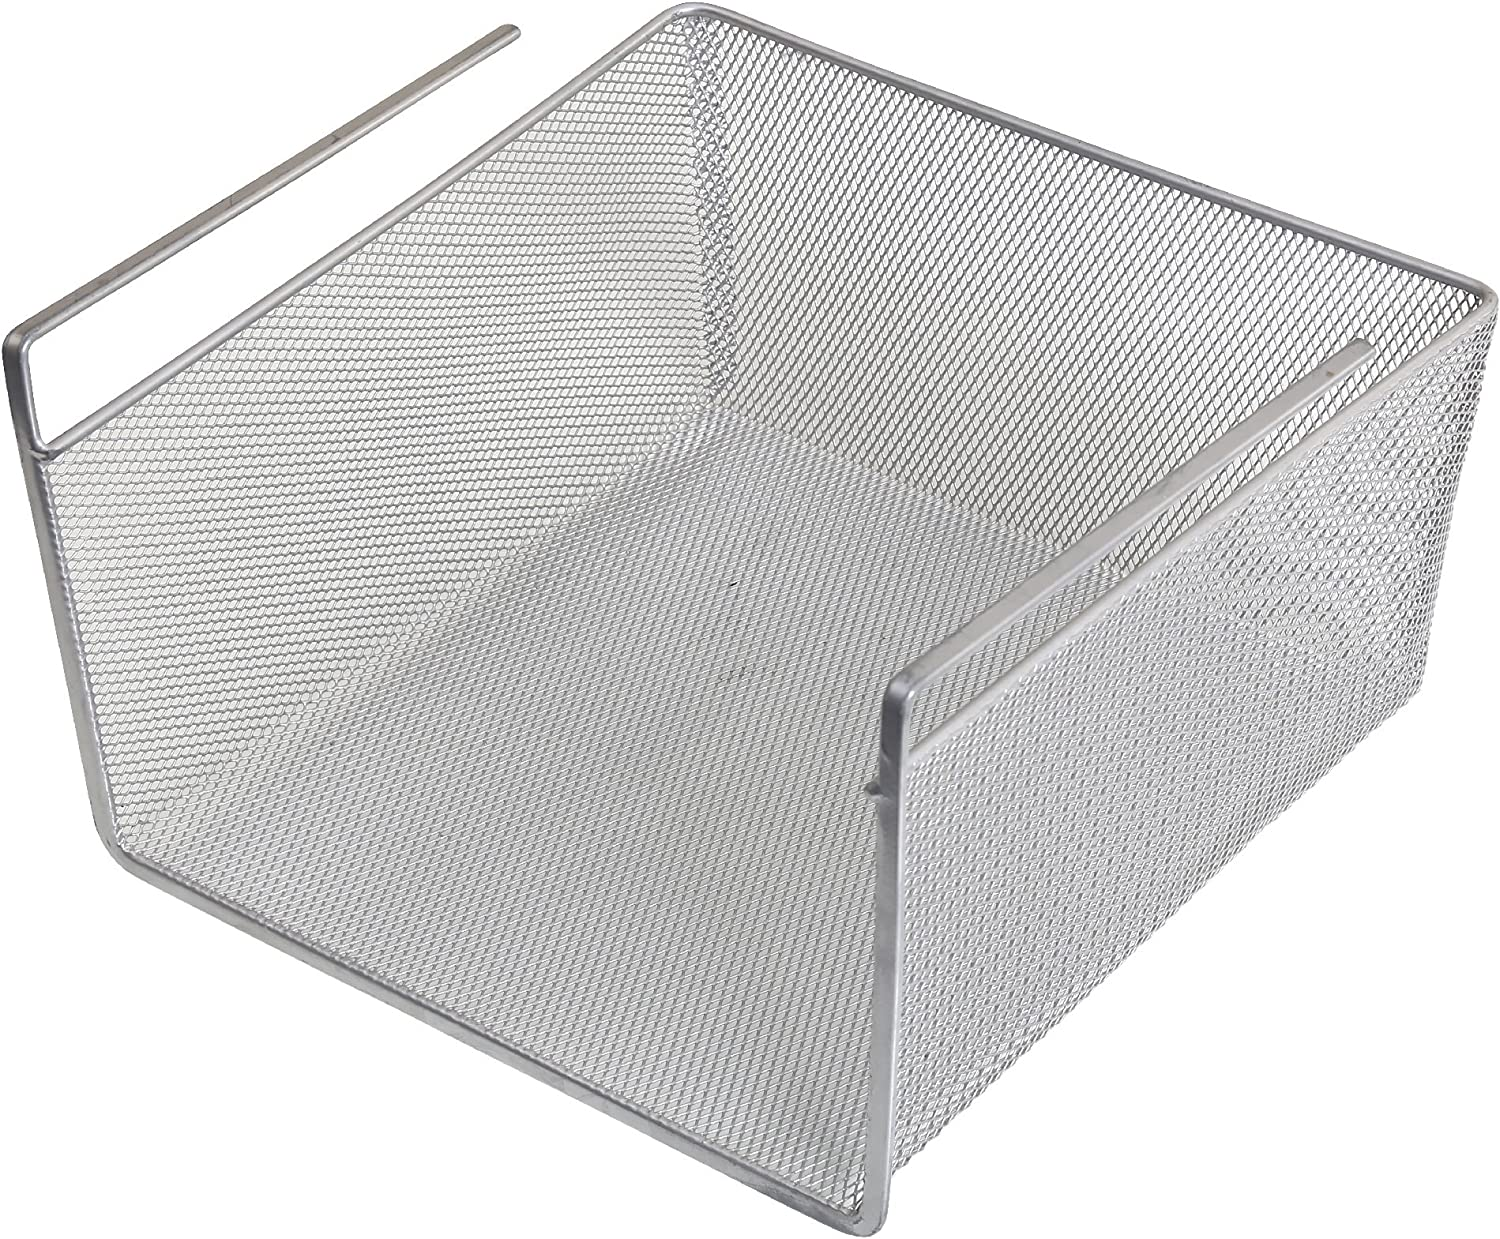 YBM Home Under Shelf Basket - Mesh Stainless Steel Storage Under Cabinet Hanging Basket Rack Maximize Space in Cabinets, Pantry Room, Bathroom, Laundry Room, and More, 1614